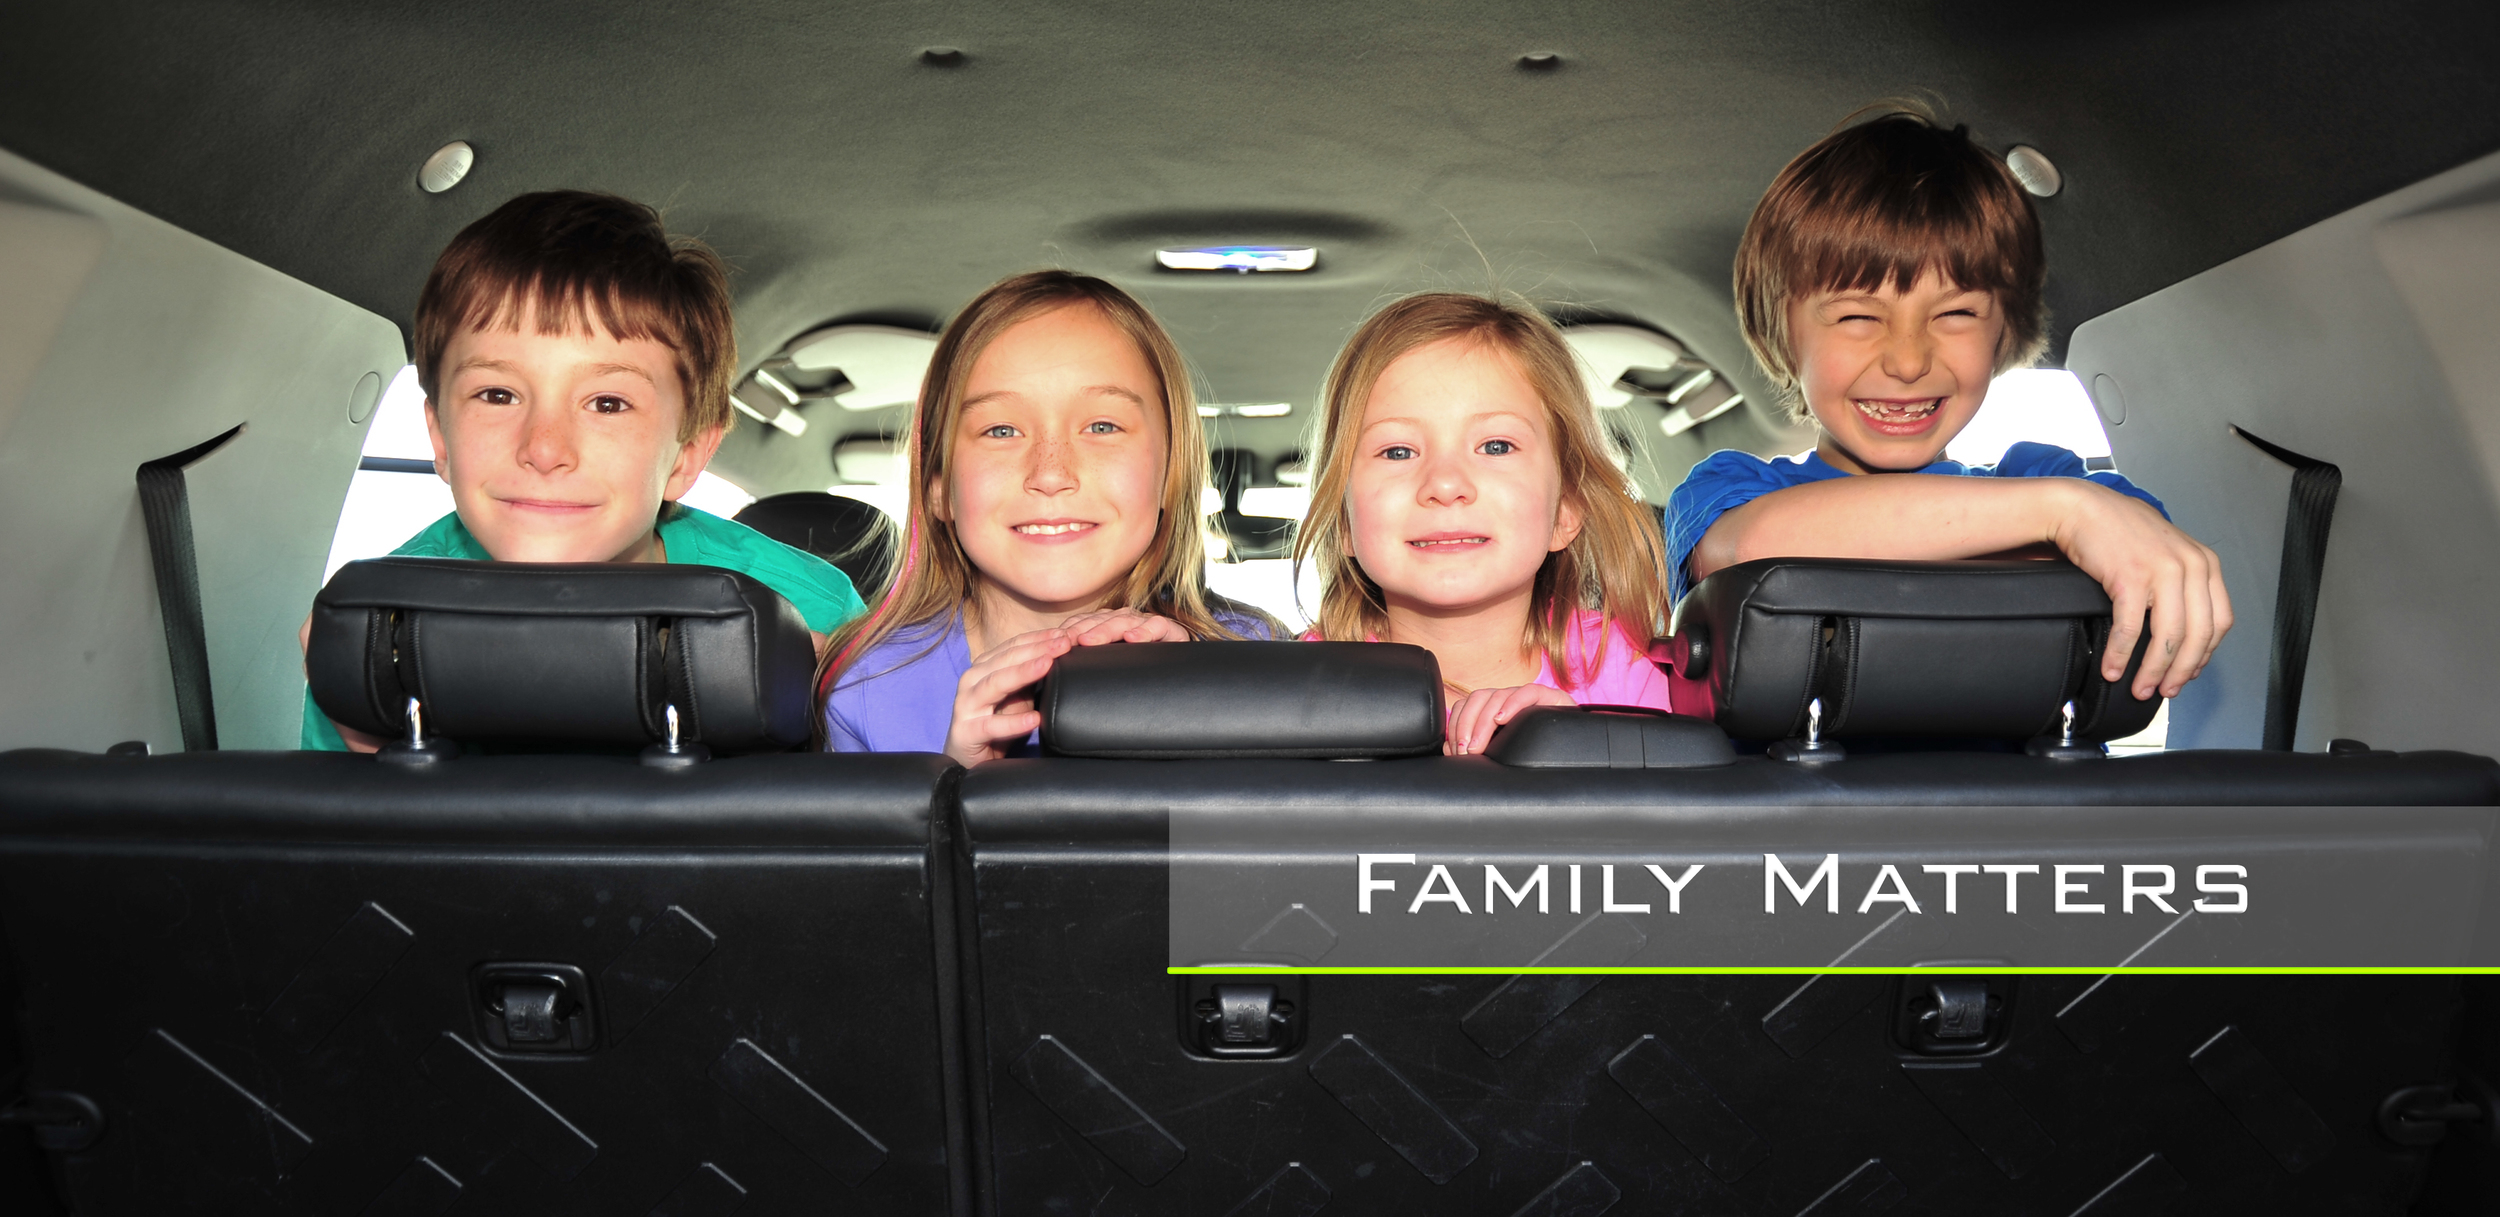 Experienced technicians to keep your family safe.